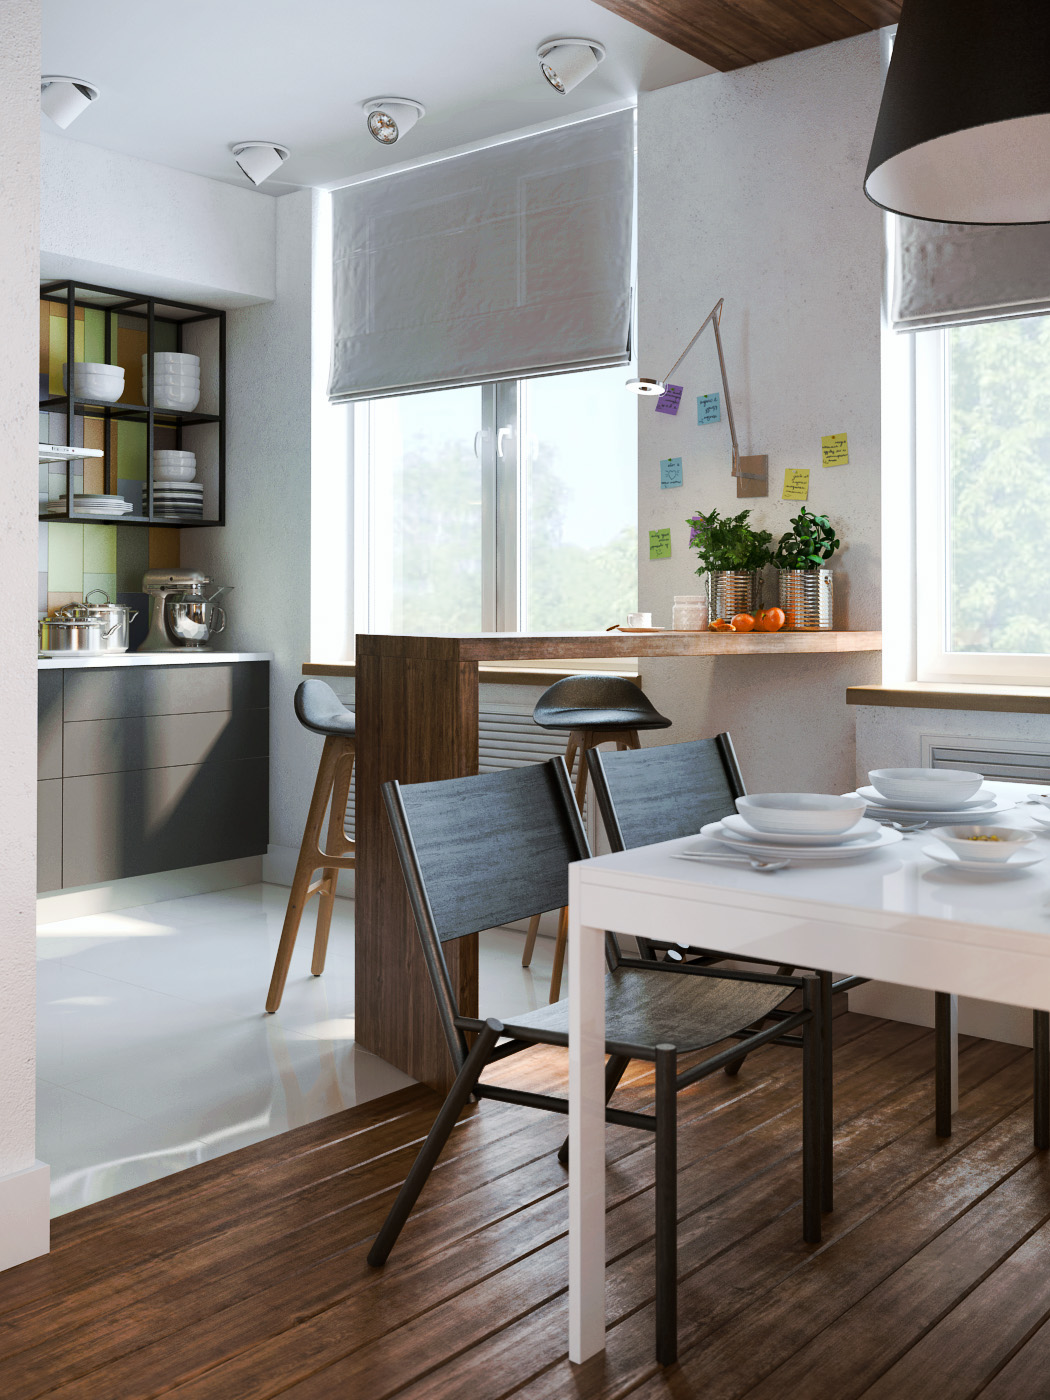 Designing Ideas employing moderate components is the great stride for apartment designing ideas on a financial plan albeit splendid shading is useful for roomy look Exposed Concrete Walls Ideas Inspiration